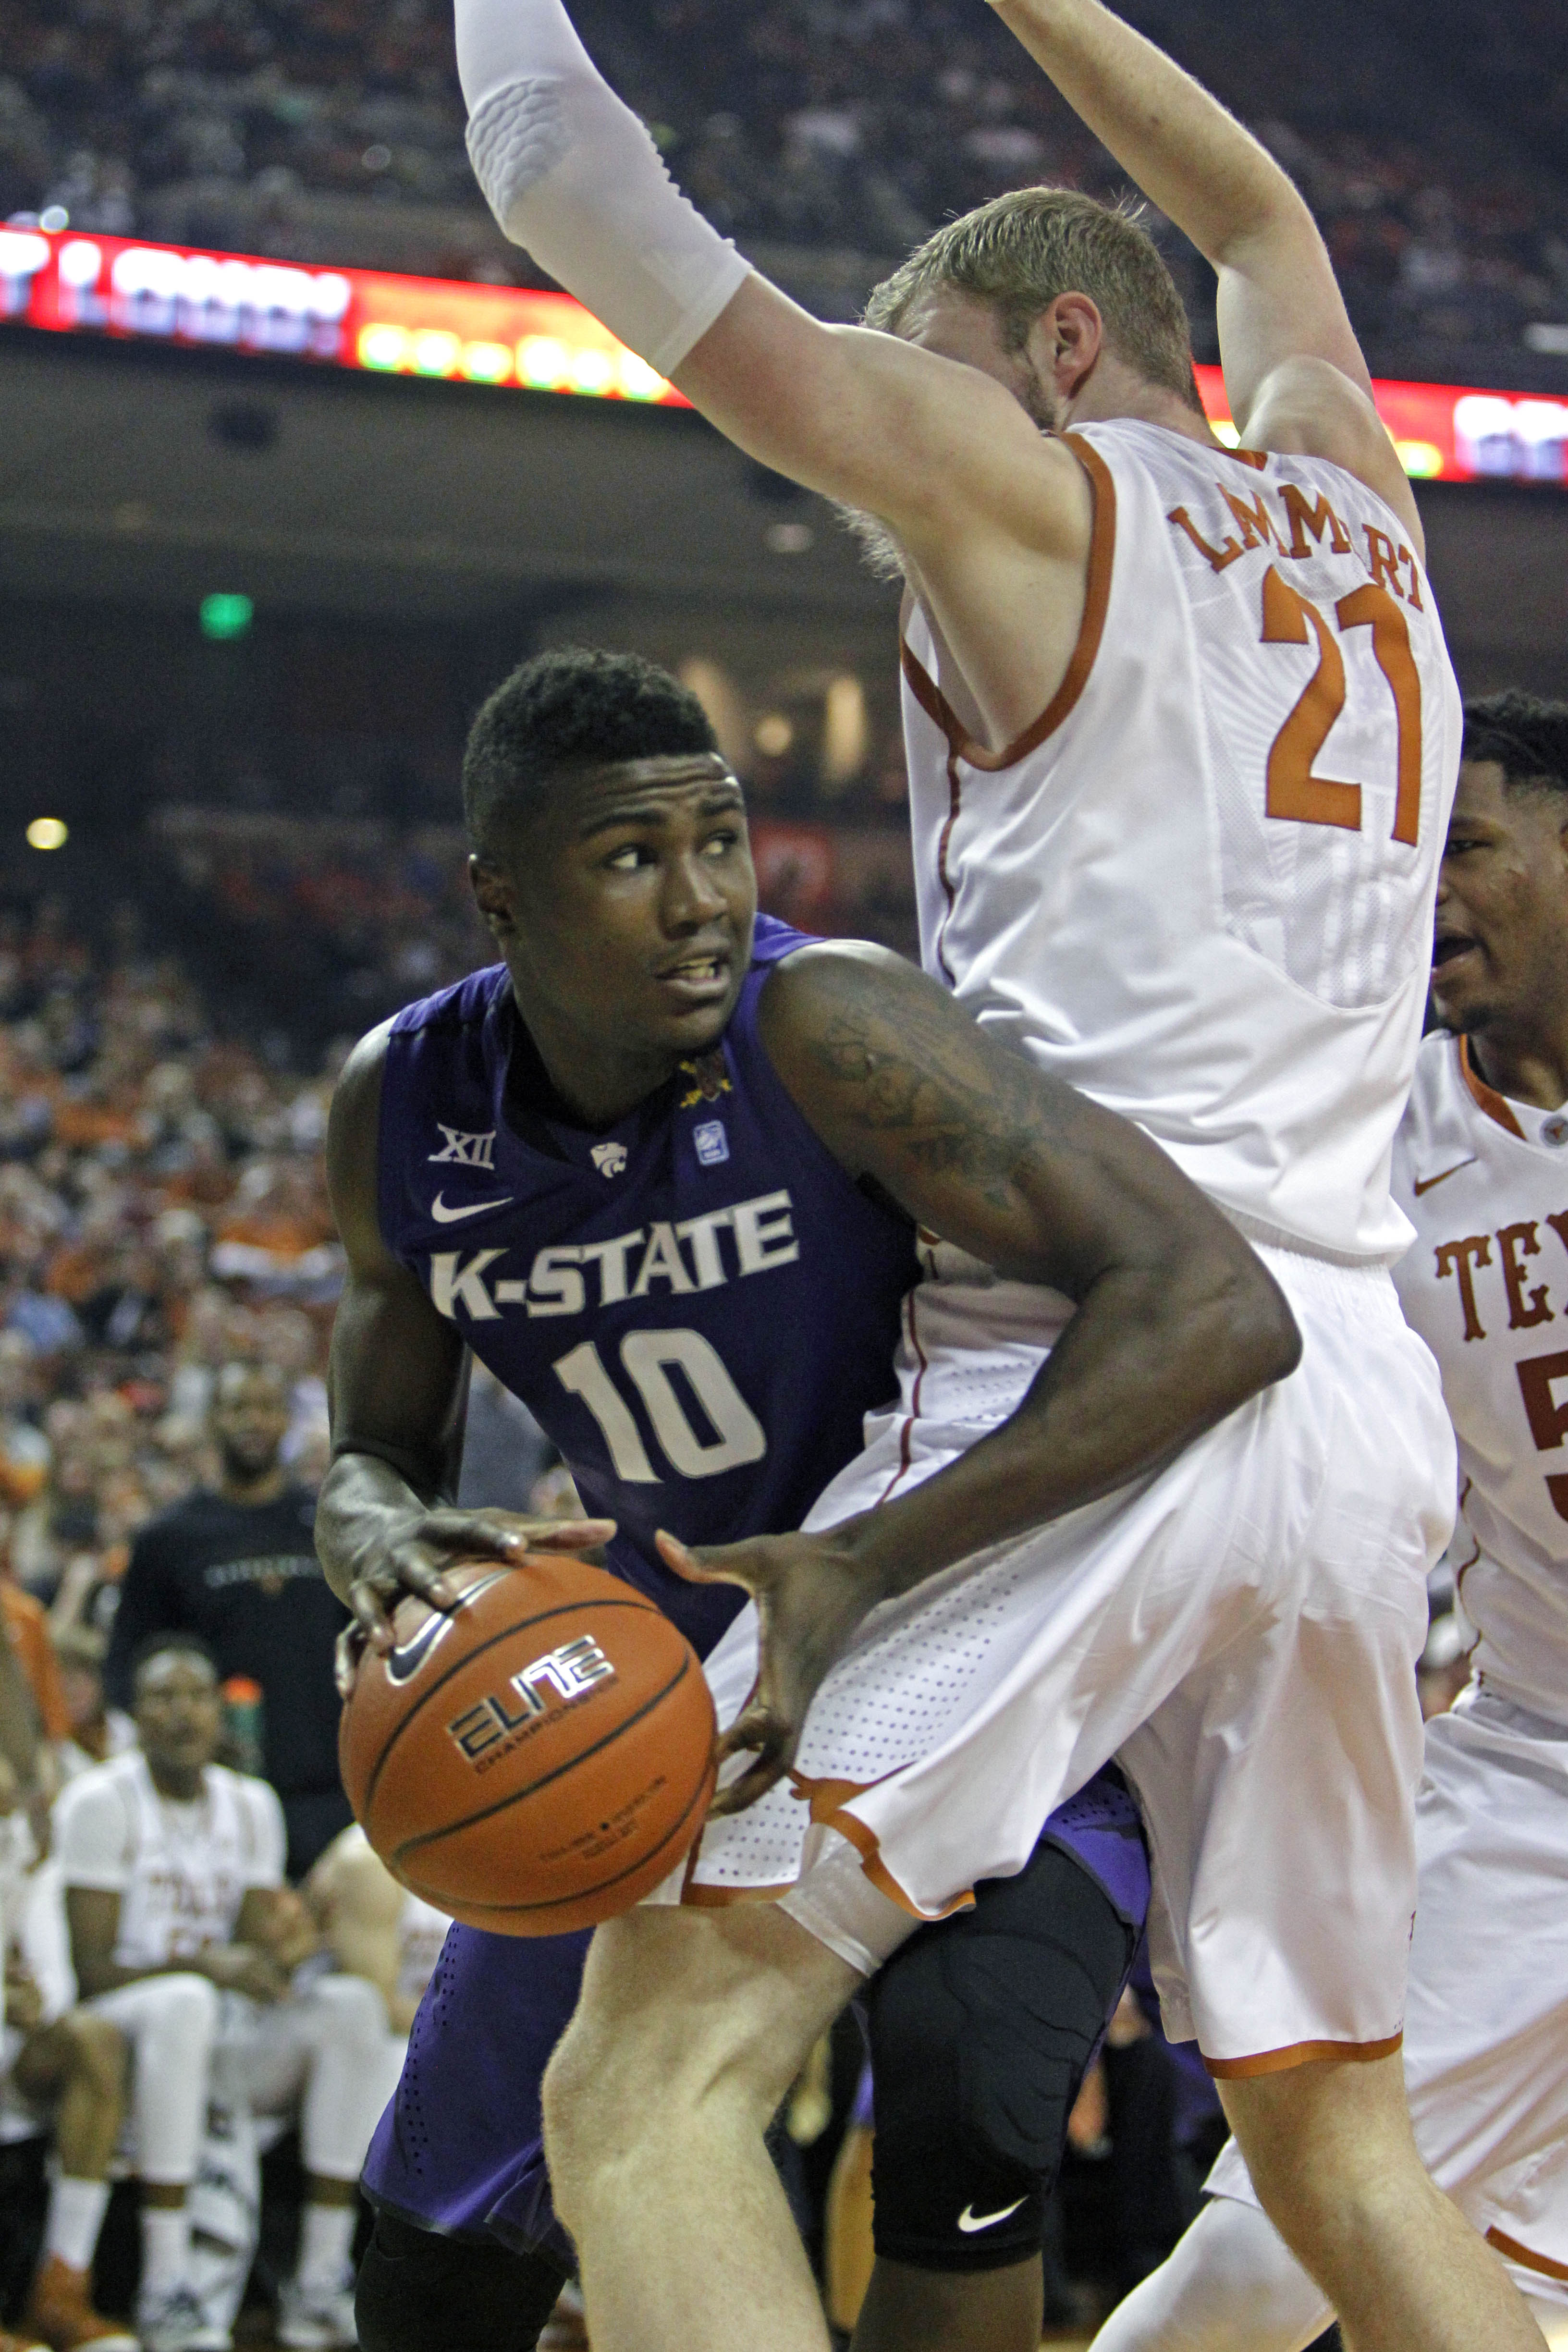 Kansas State forward Malek Harris (10) looks to pass around Texas forward Connor Lammert (21) during the first half of an NCAA college basketball game, Saturday, March 7, 2015, in Austin, Texas.  (AP Photo/Michael Thomas)